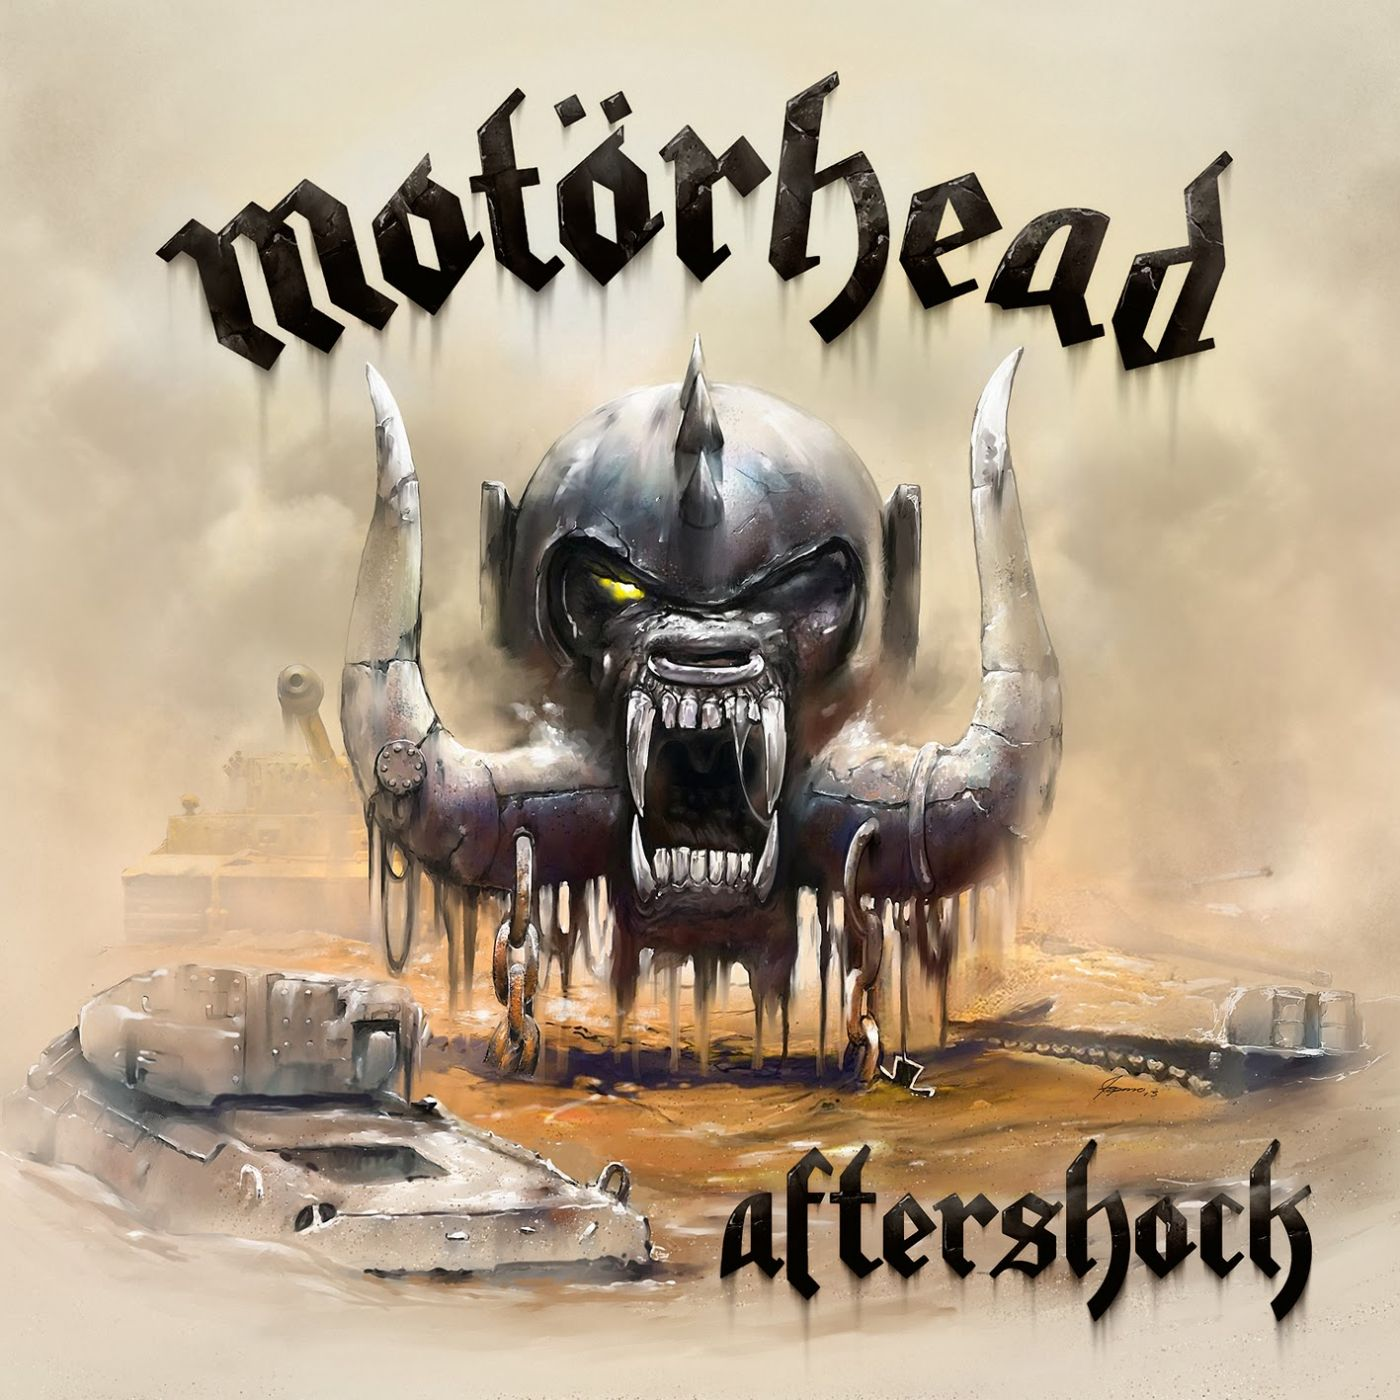 Art for Keep Your Powder Dry by Motörhead